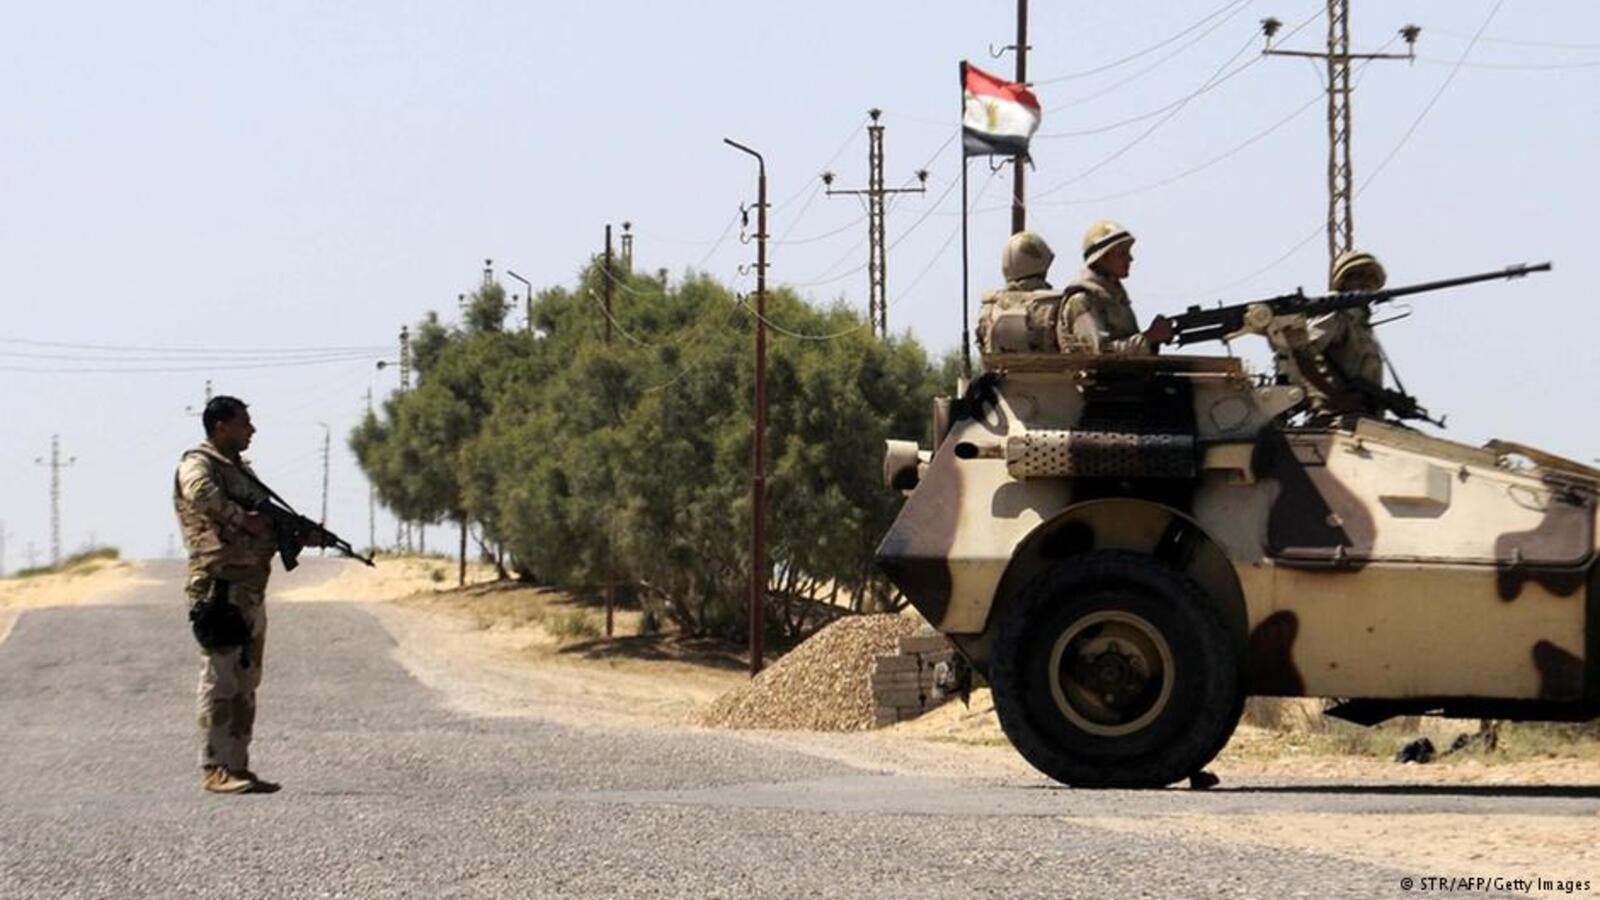 The Egyptian Armed Forces have launched counterattacks against militant stationing points across the Sinai Peninsula where the Sinai Province militant group is based. (AFP/File)